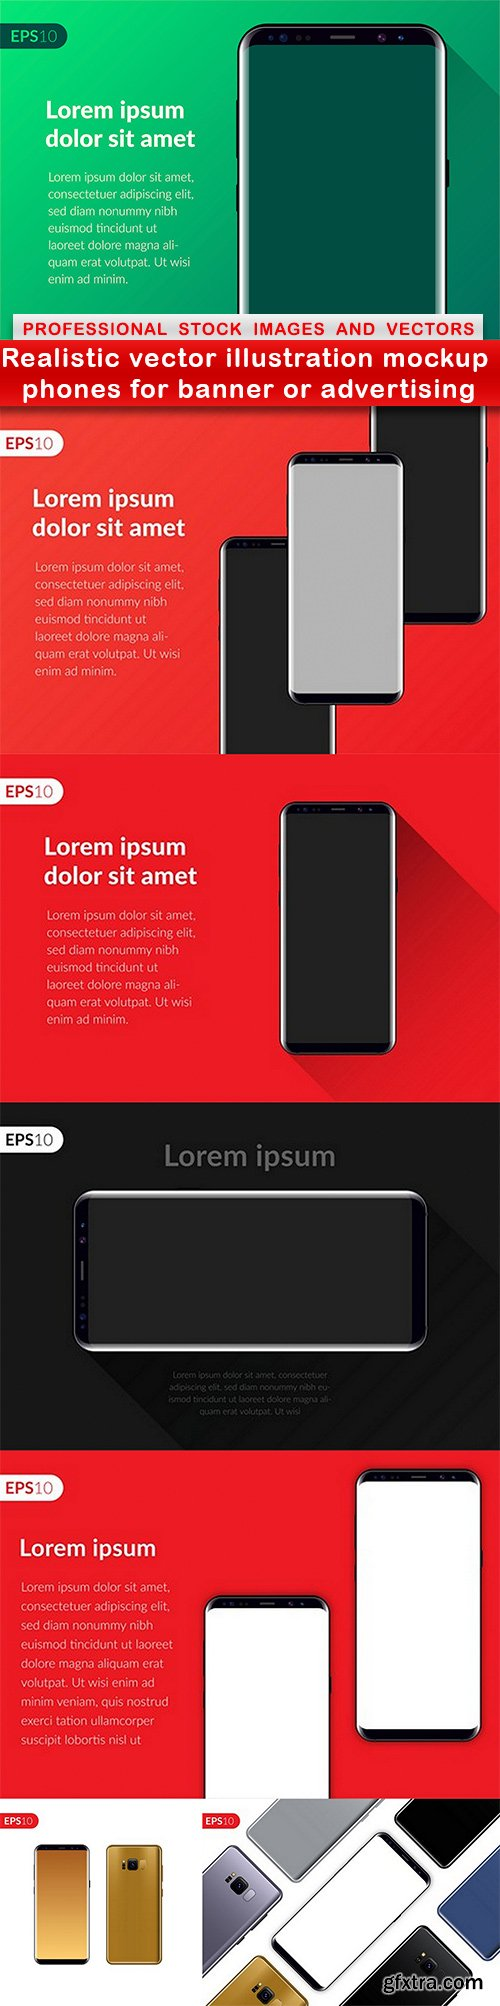 Realistic vector illustration mockup phones for banner or advertising - 7 EPS